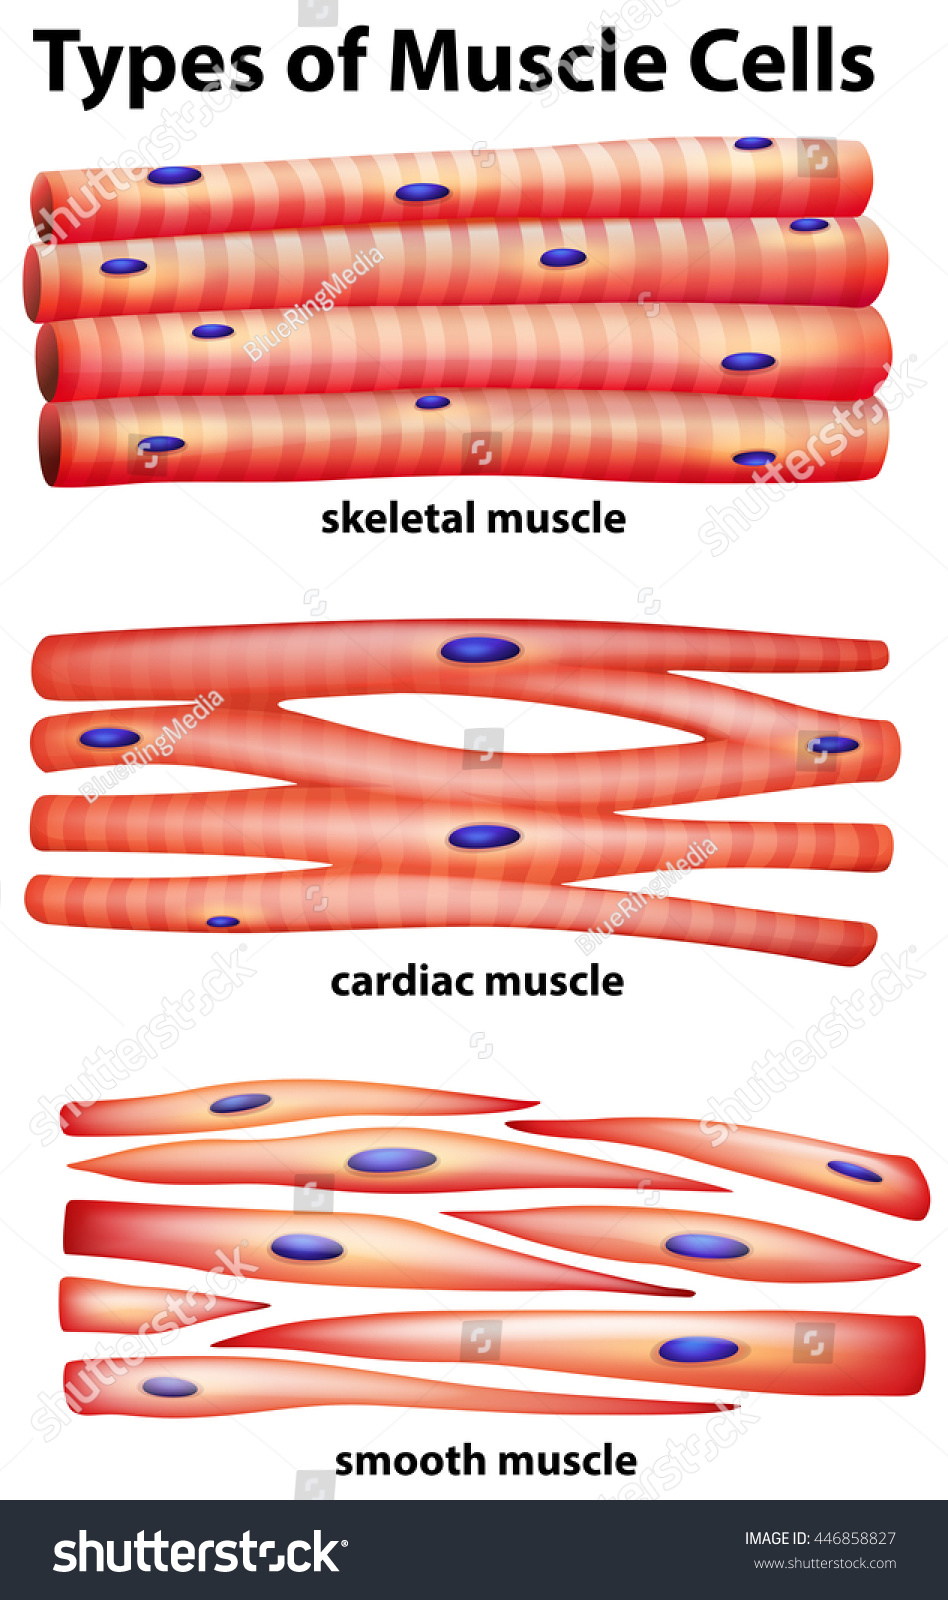 Diagram Showing Types Of Muscles Schematics Wiring Diagrams